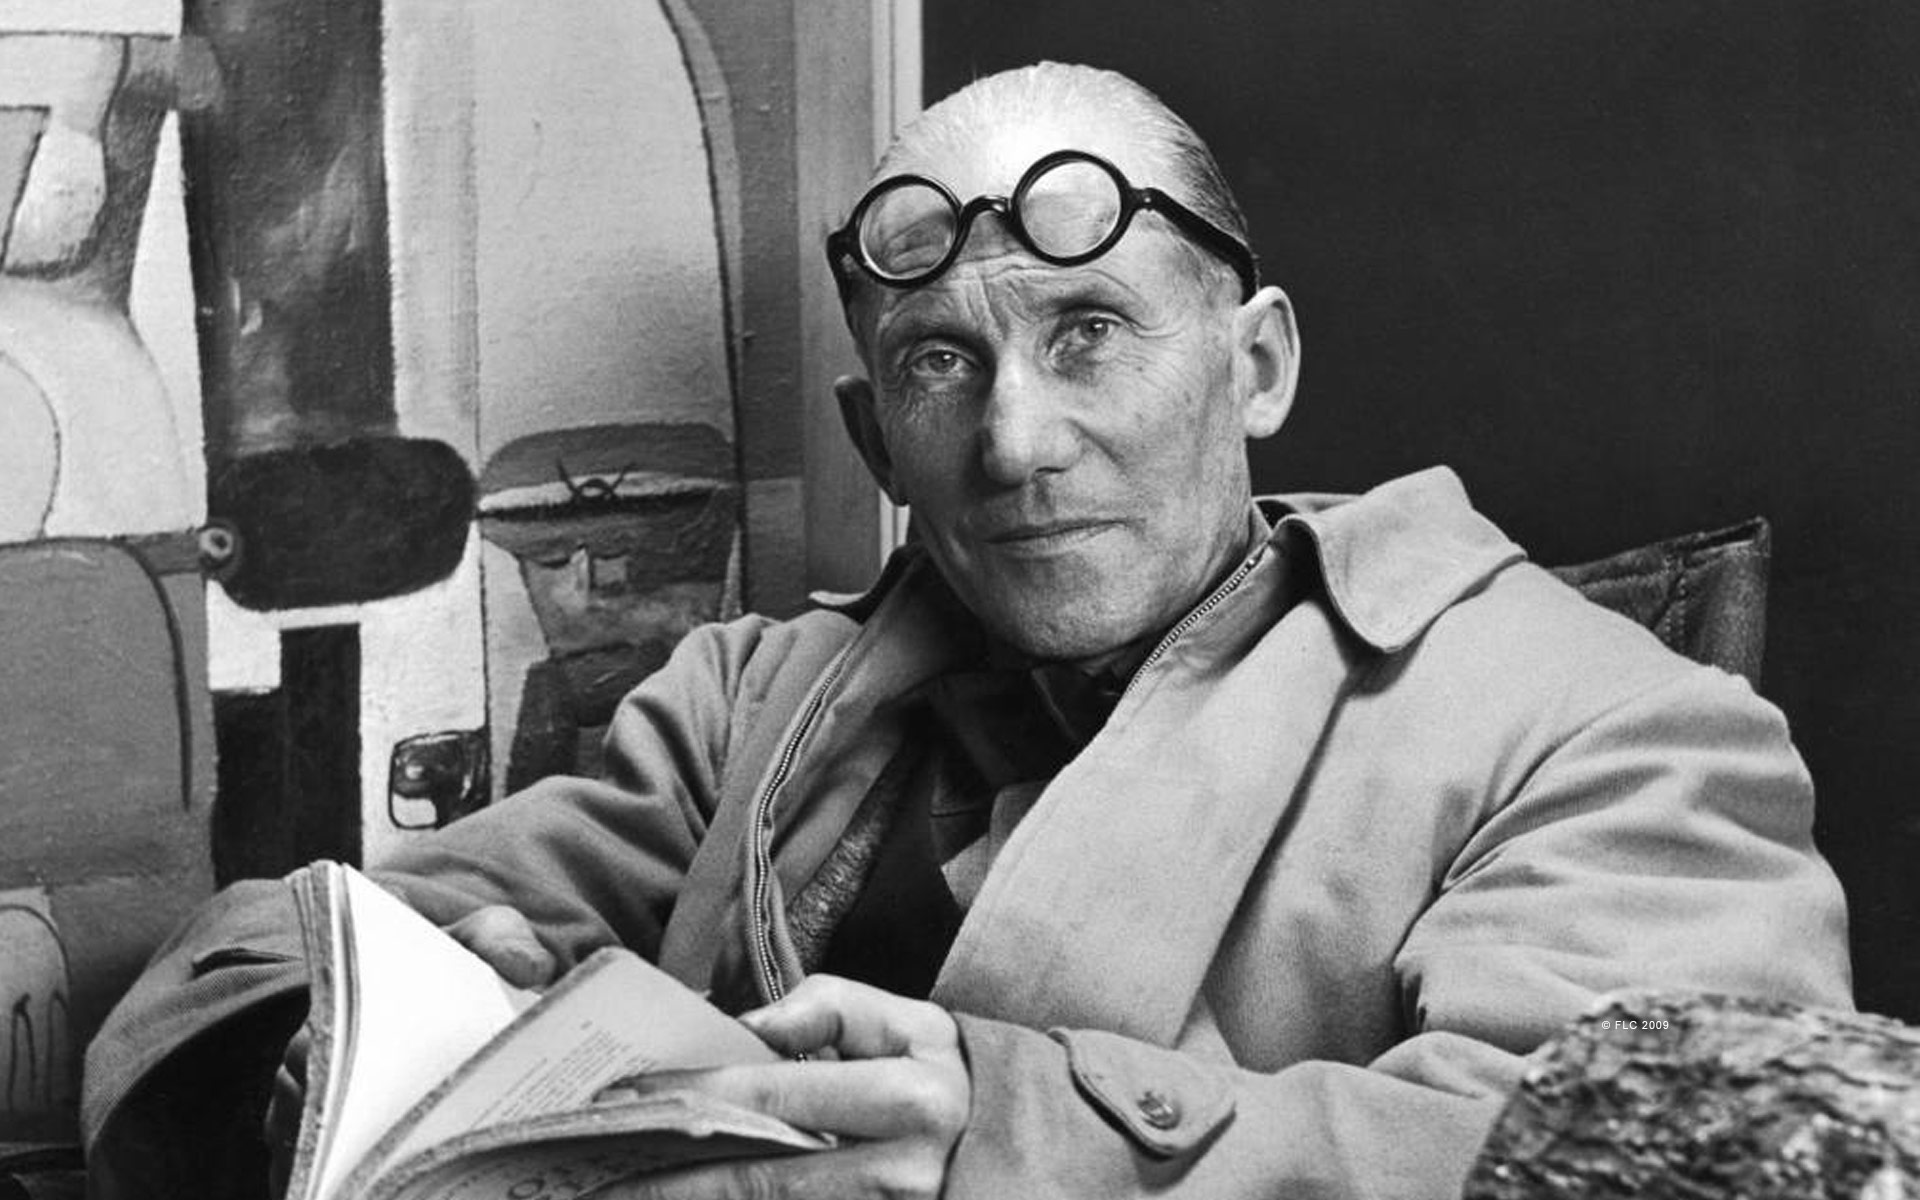 """French-Swiss architect Le Corbusier was one of the founders of modern architecture. In the 1920s, Corbusier predicted that by the year 2000 we'd be living in a """"Radiant City"""" of glass and steel skyscrapers."""